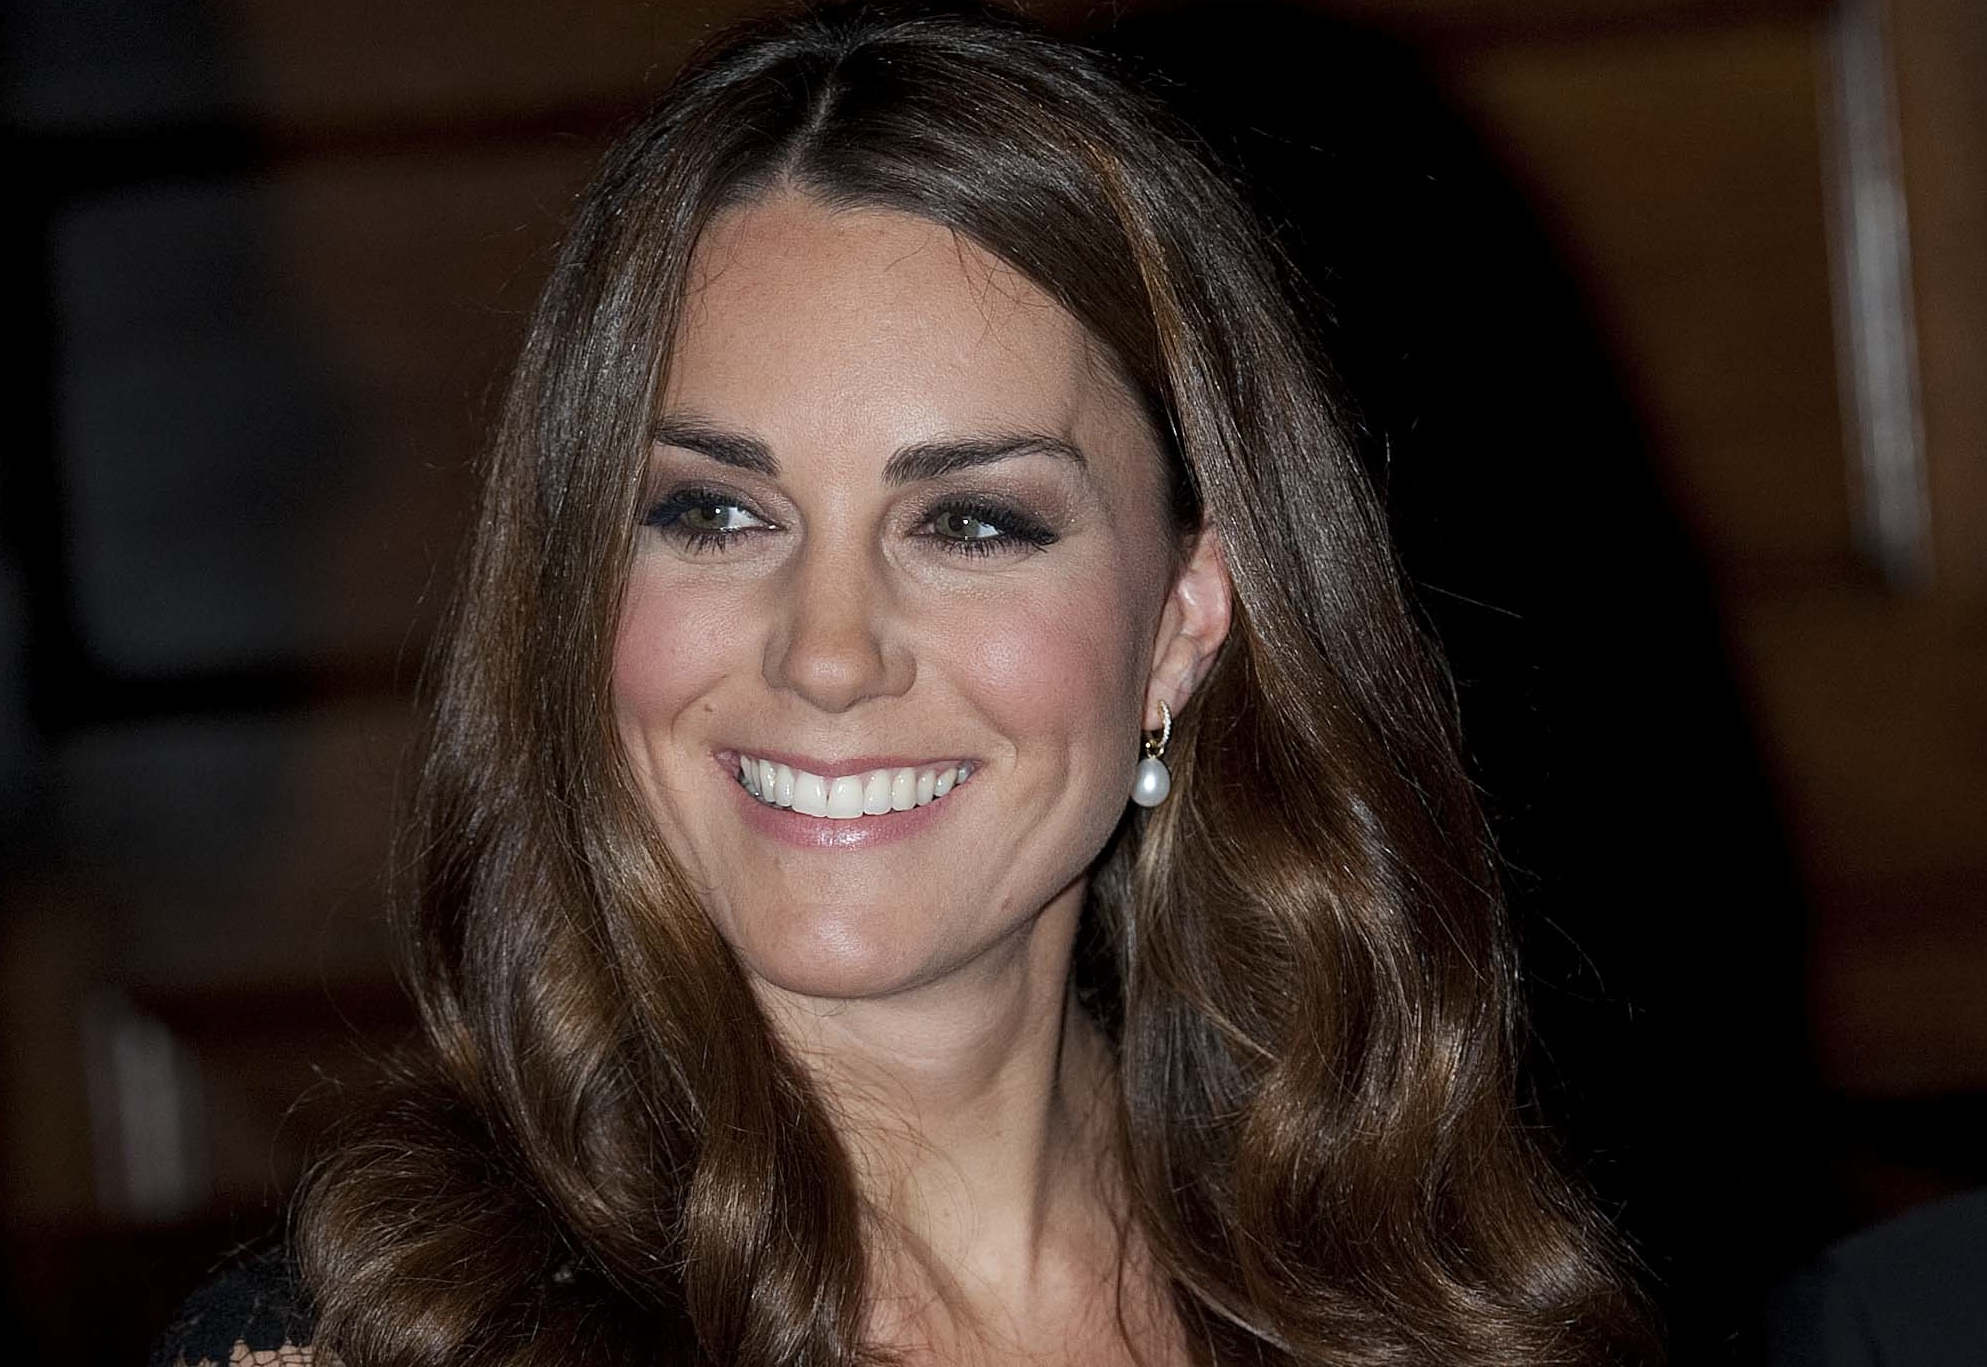 Kate Middleton and All the Pregnancy Details